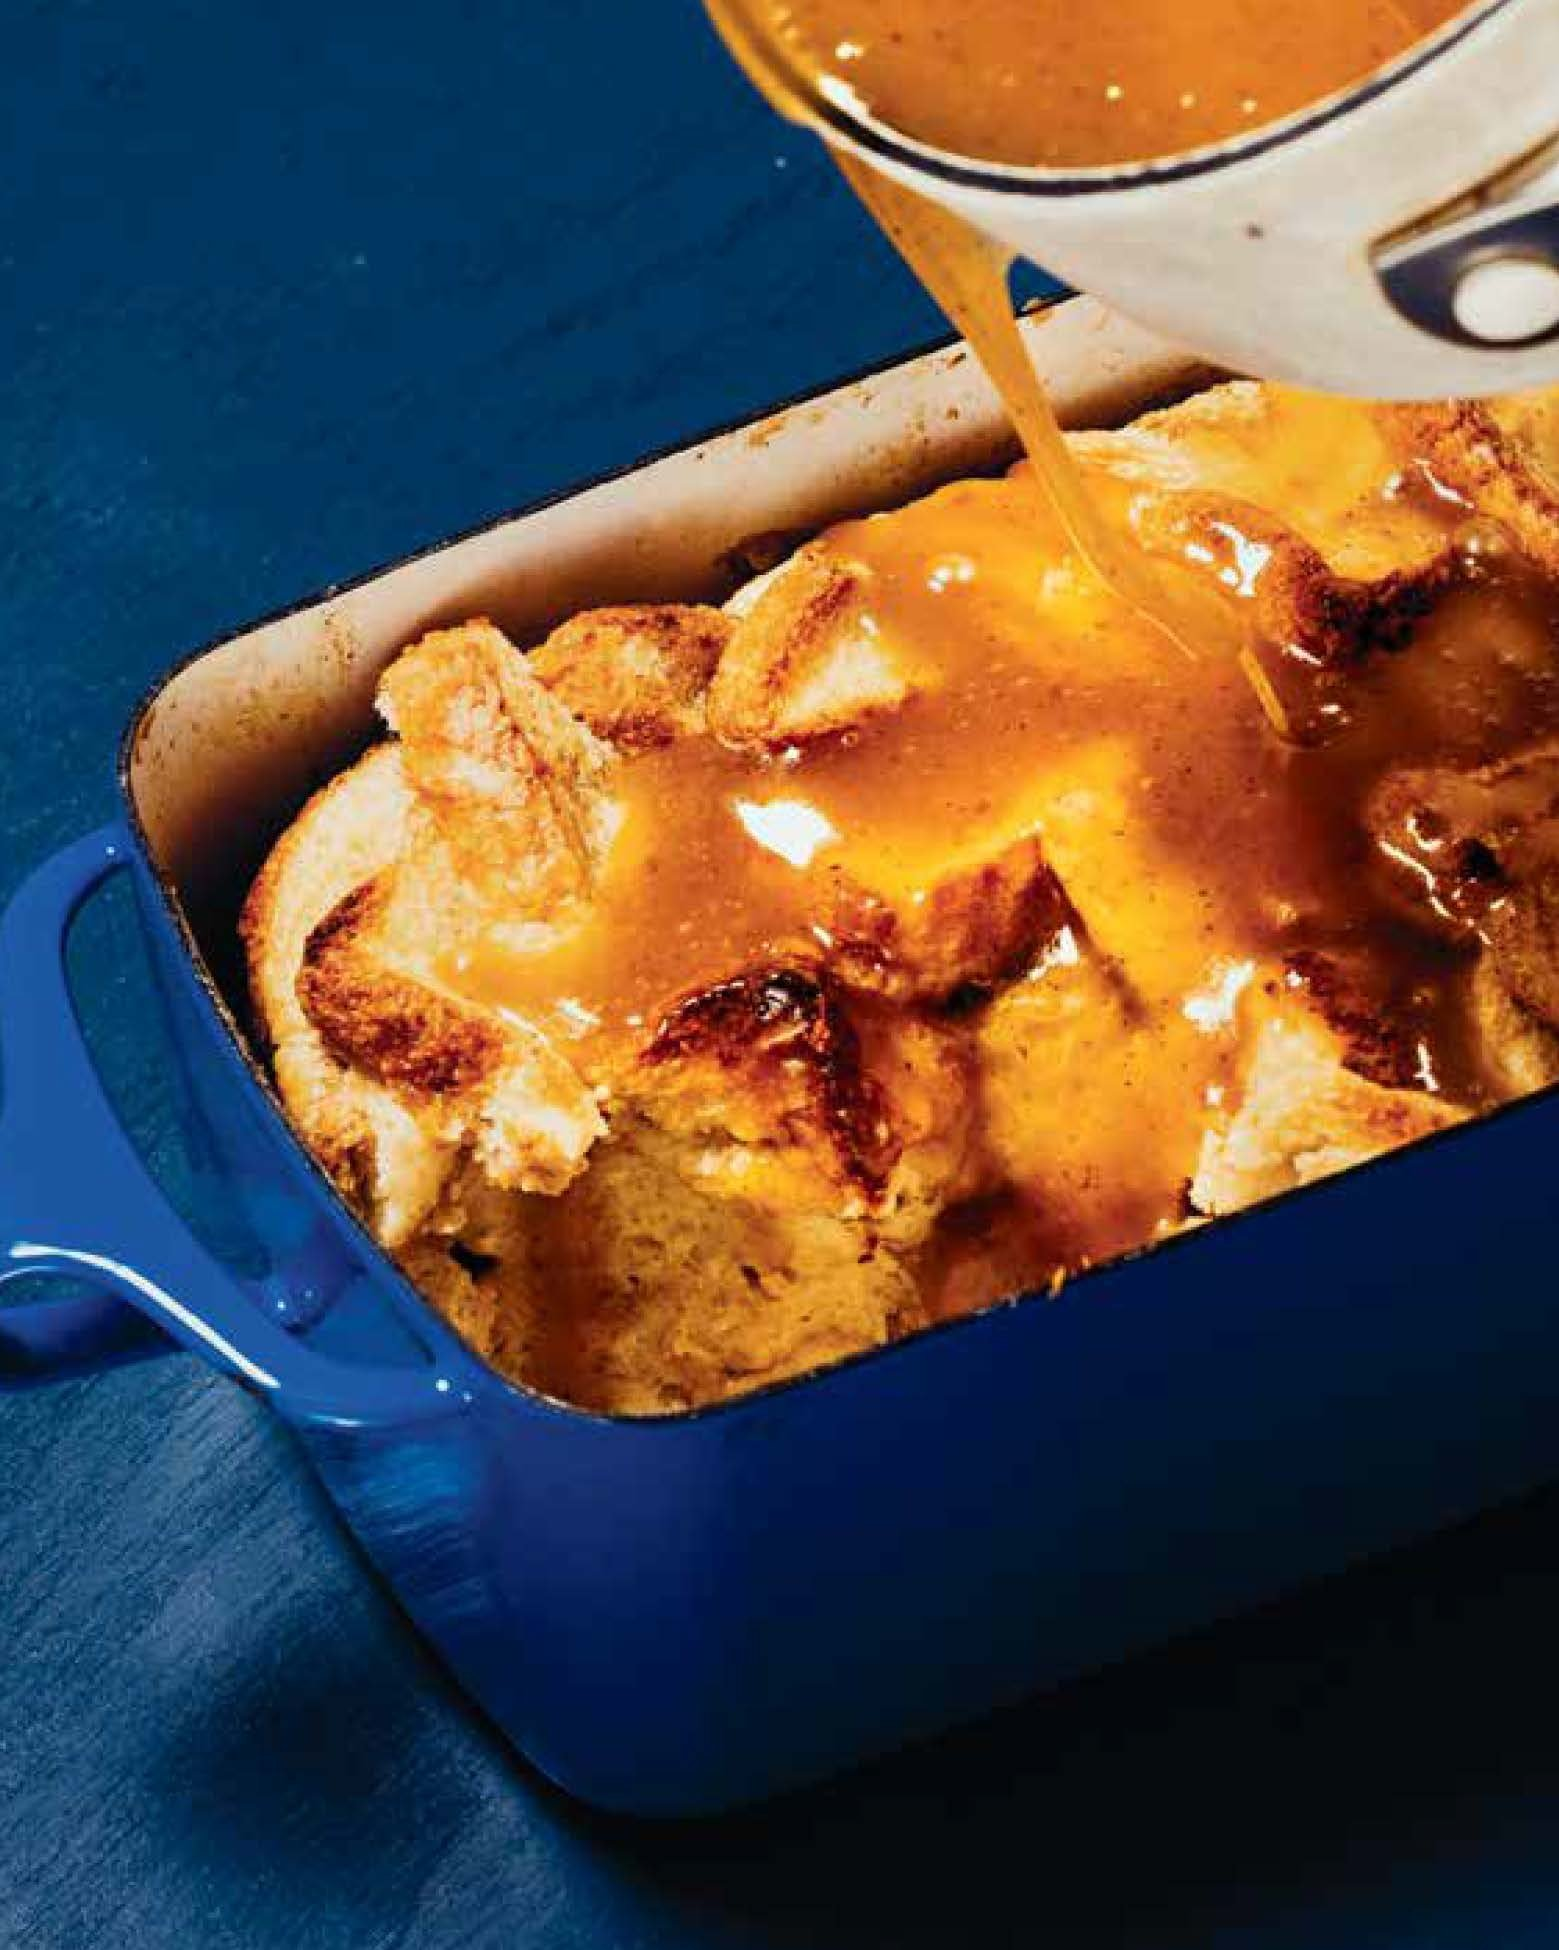 Chef Kelly Fields's Bread Pudding